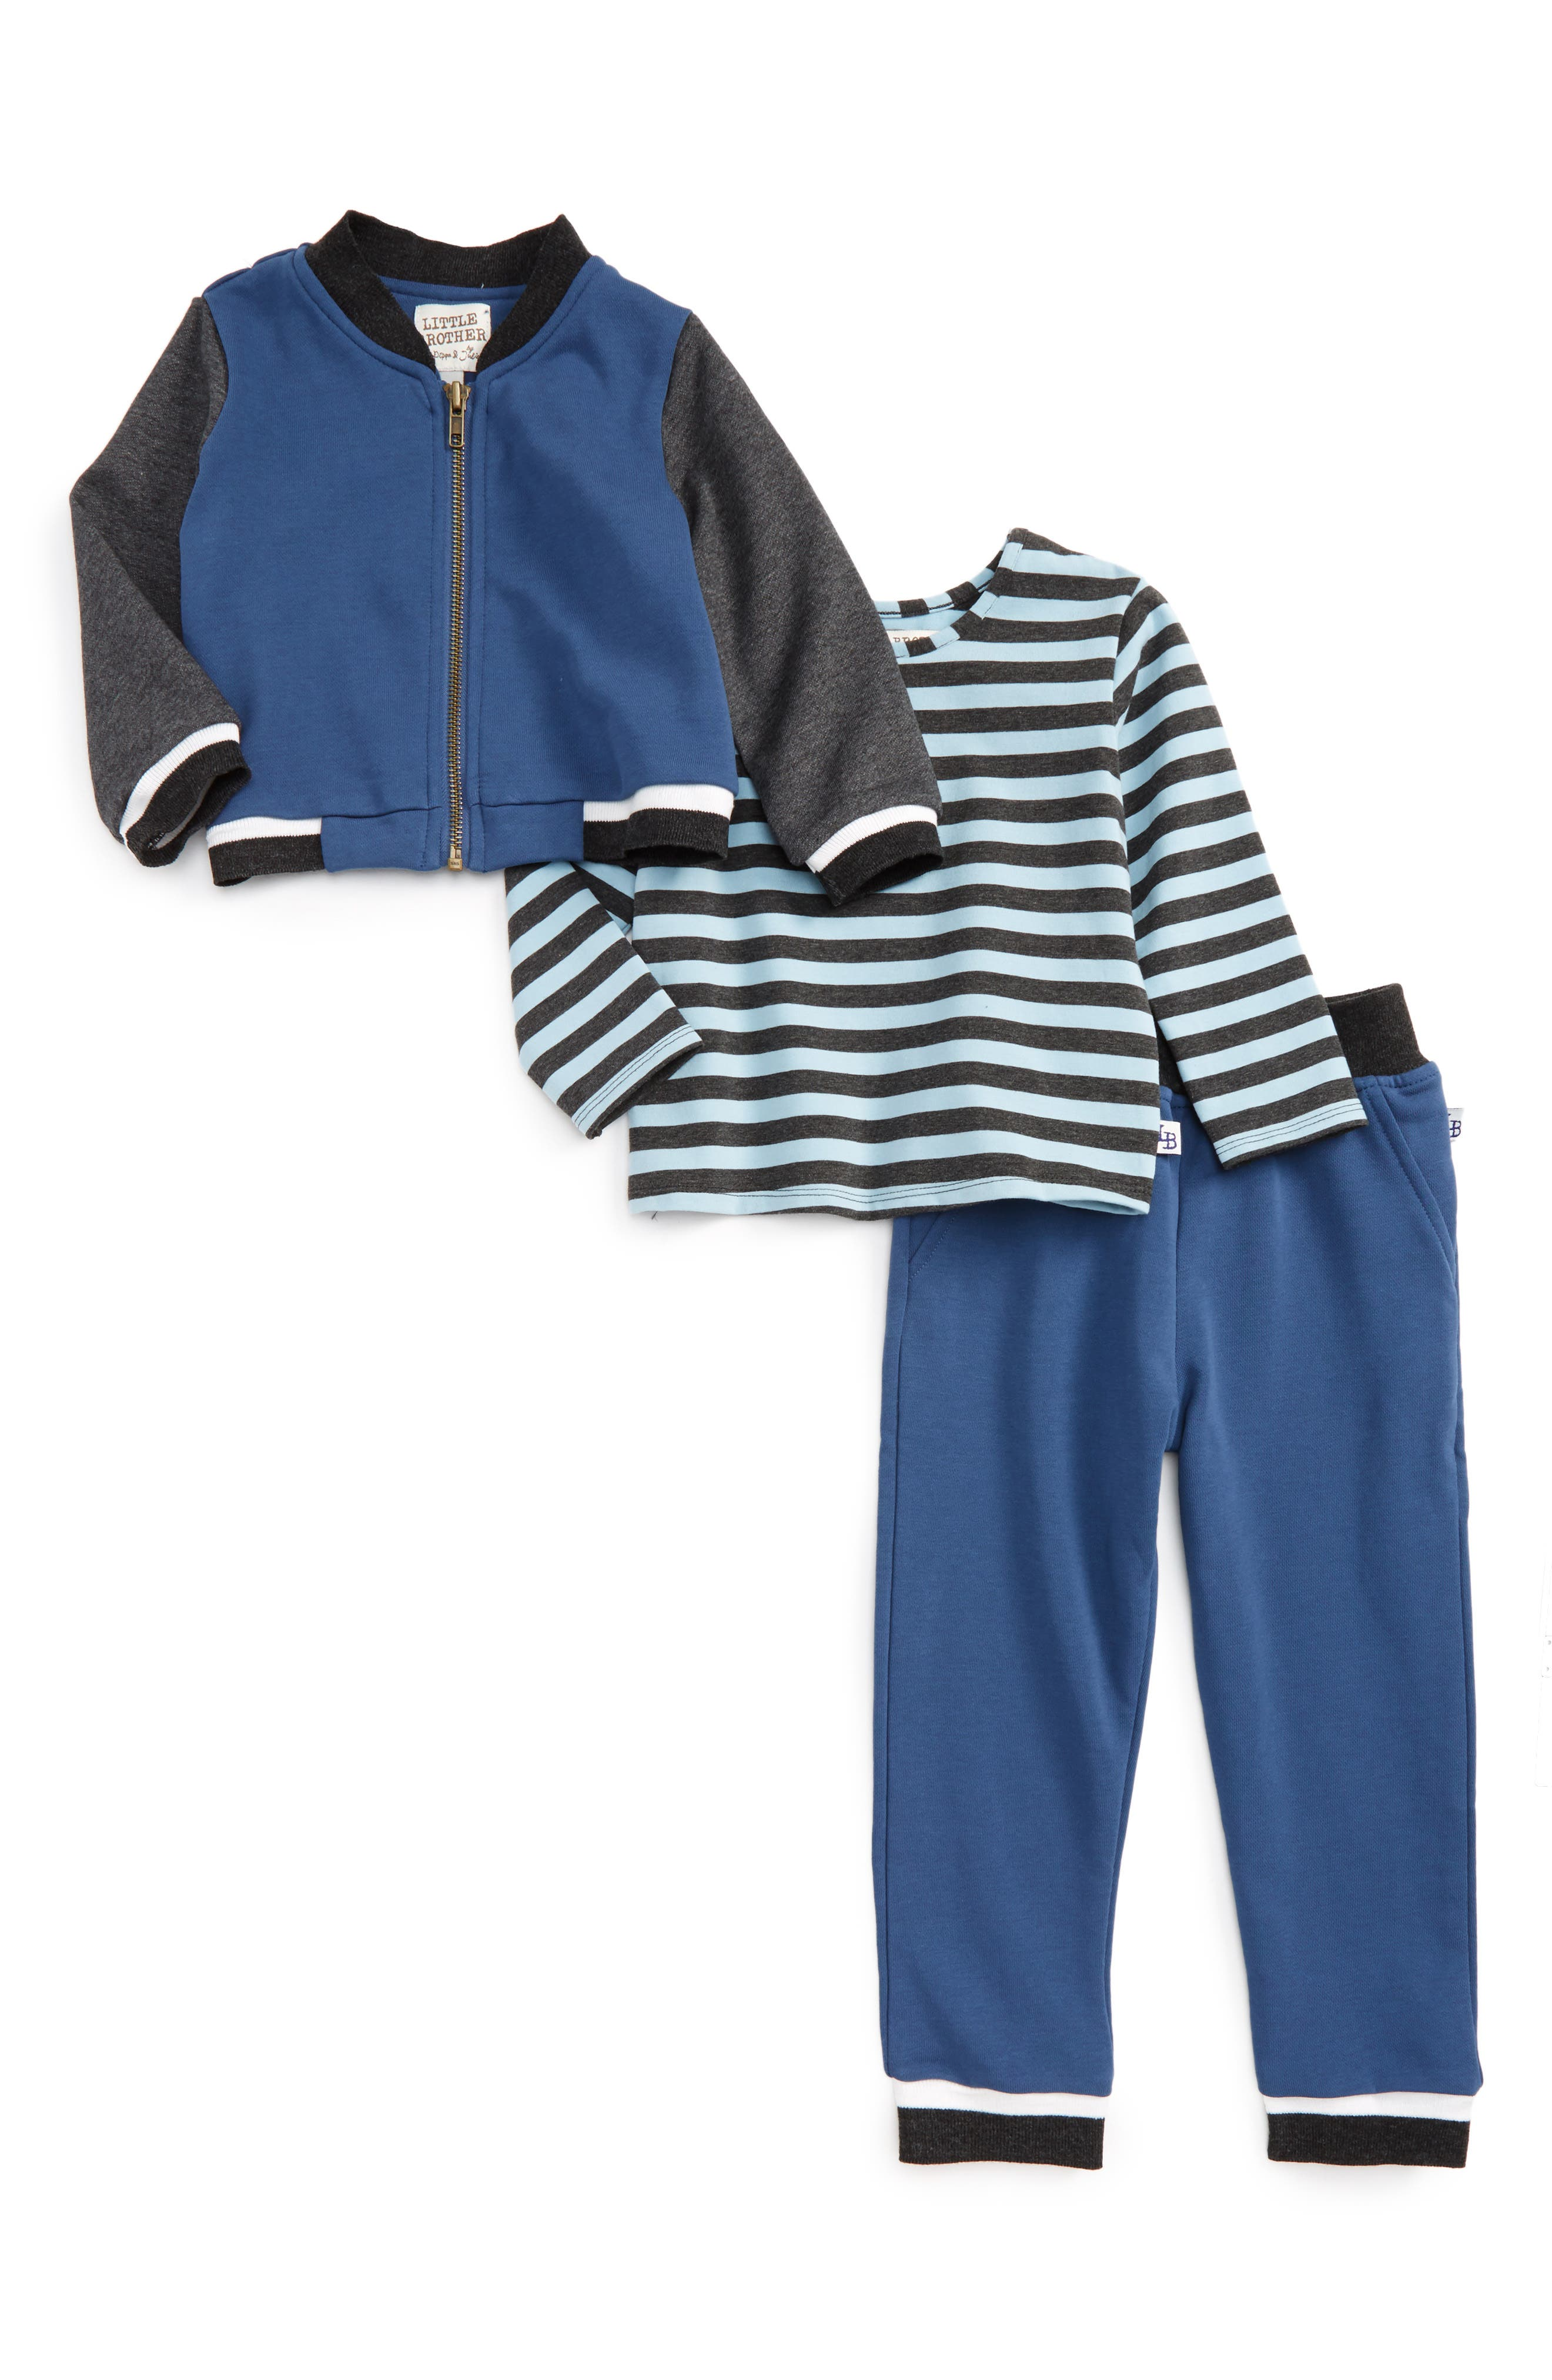 Main Image - Little Brother by Pippa & Julie Bomber Jacket, Top & Sweatpants Set (Toddler Boys)